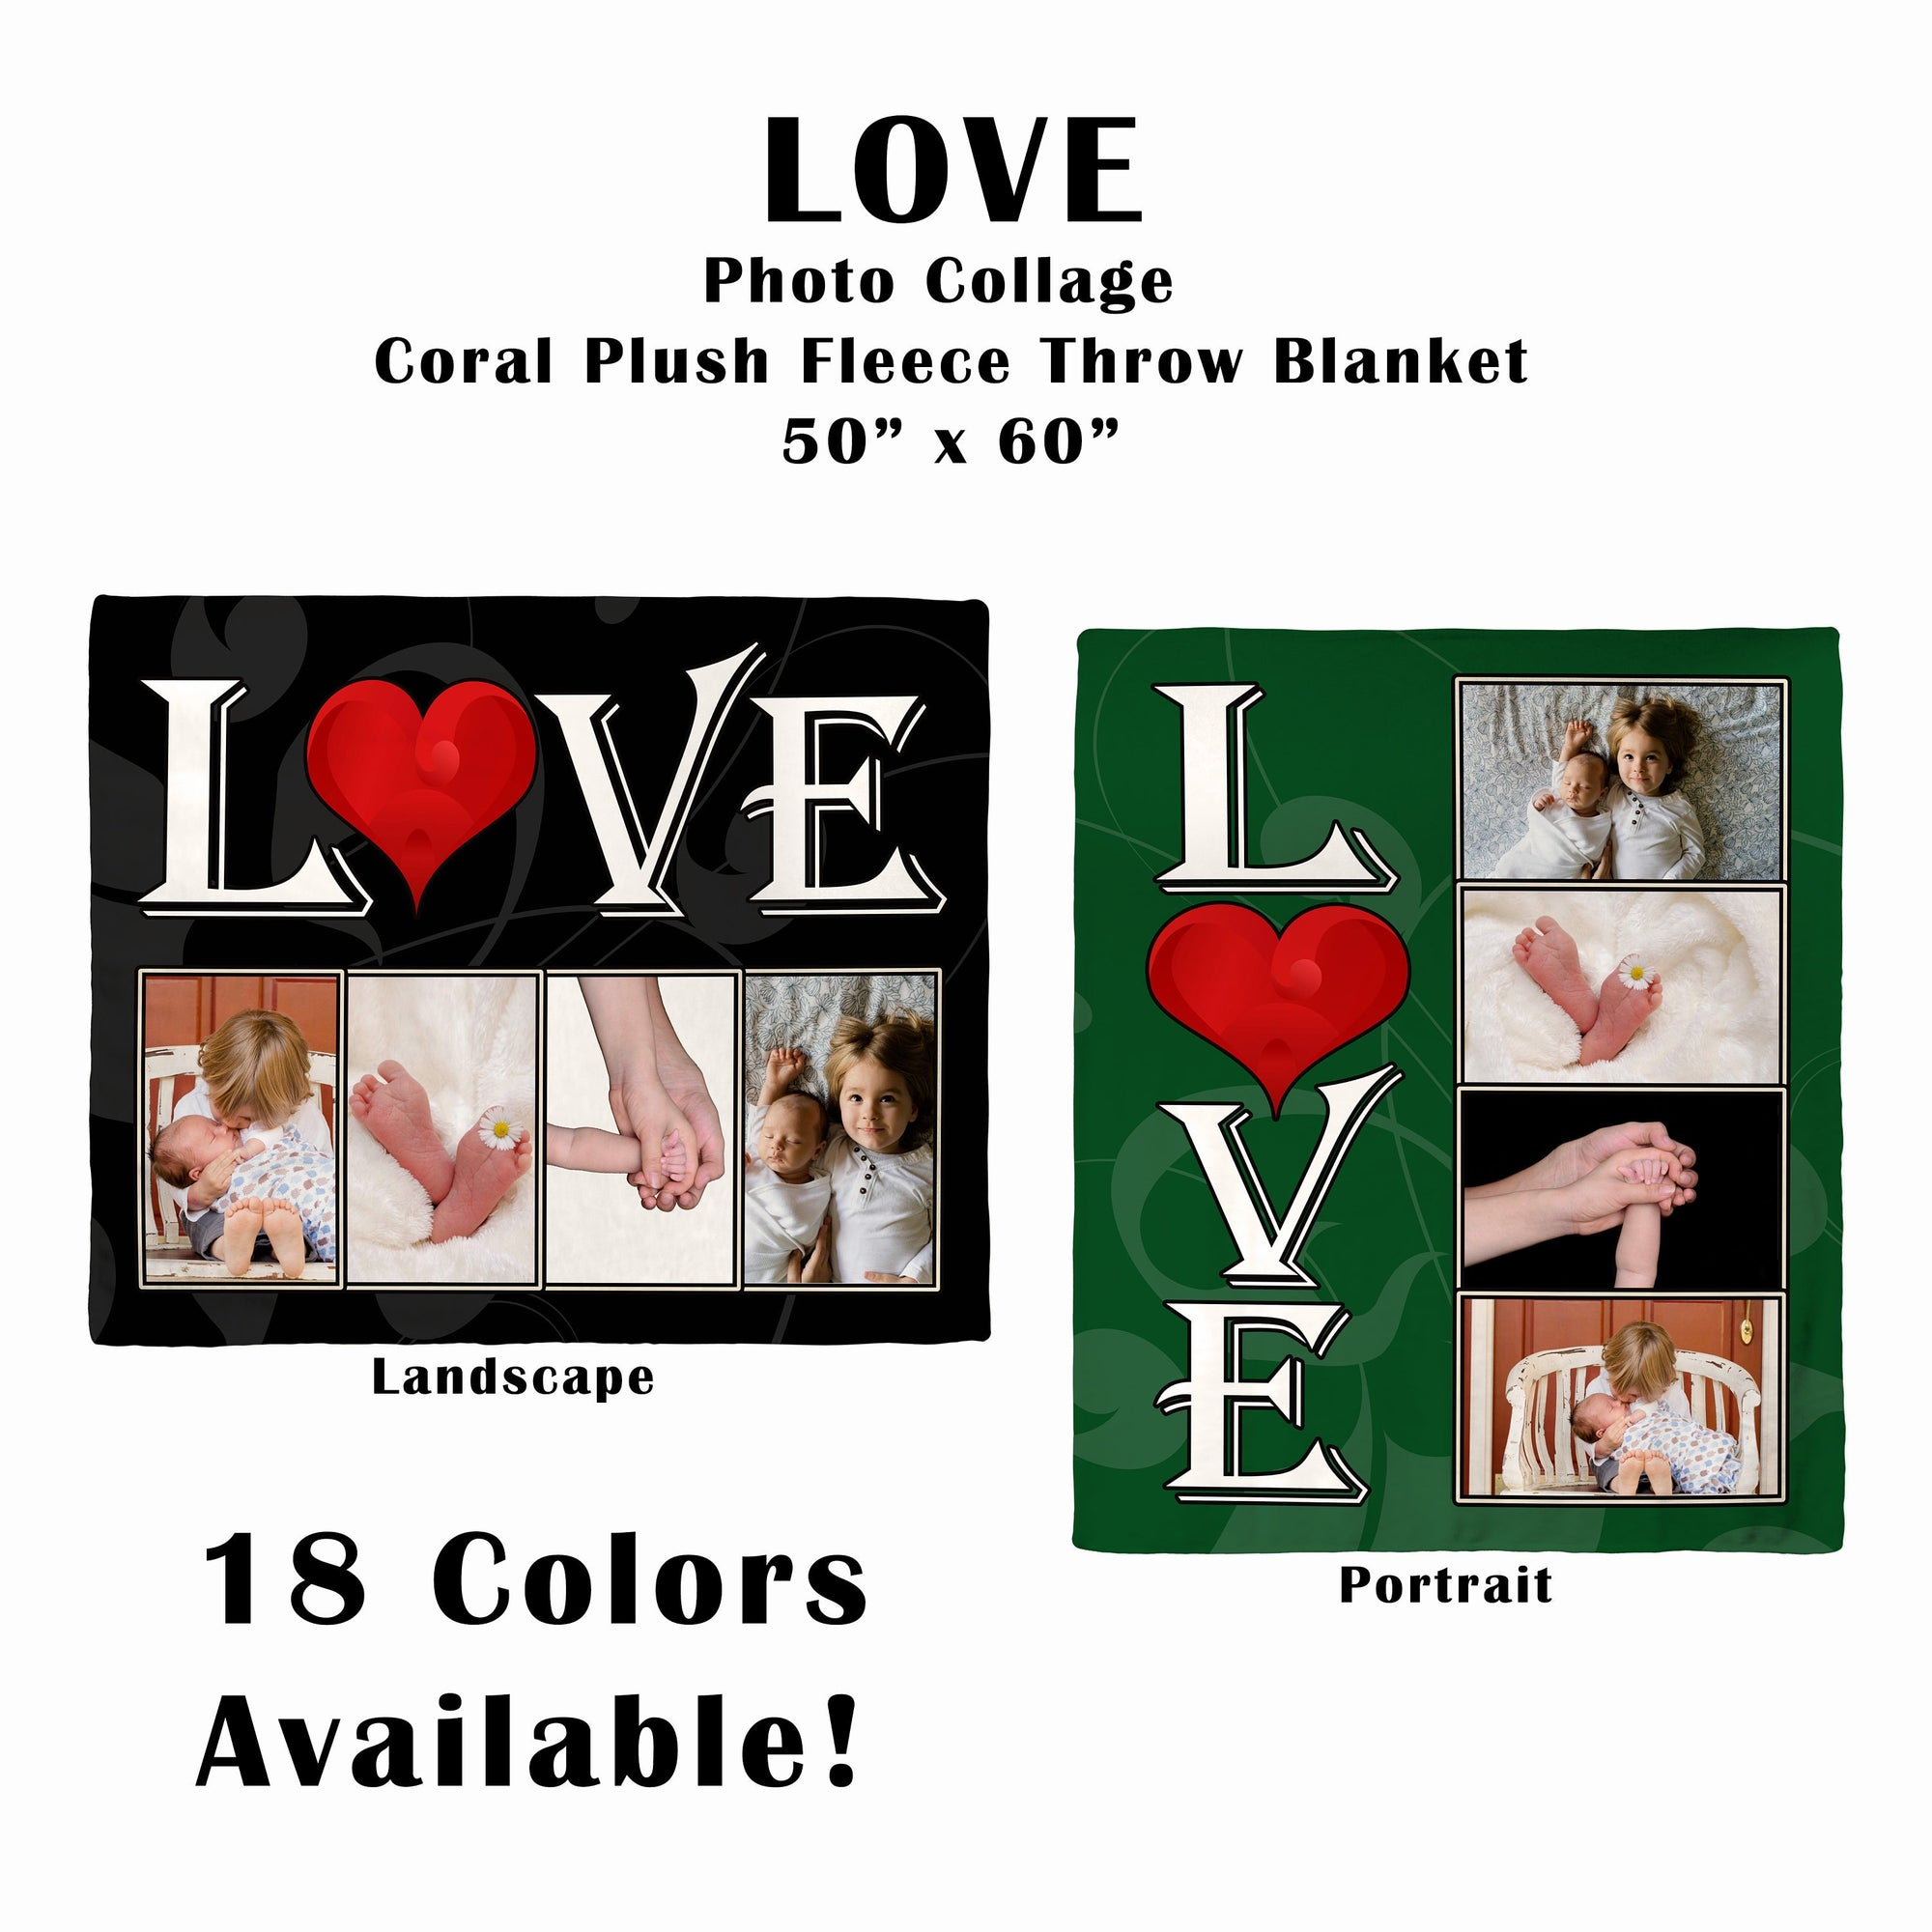 LOVE - Personalized  4 Image Coral Plush Fleece Collage Blanket